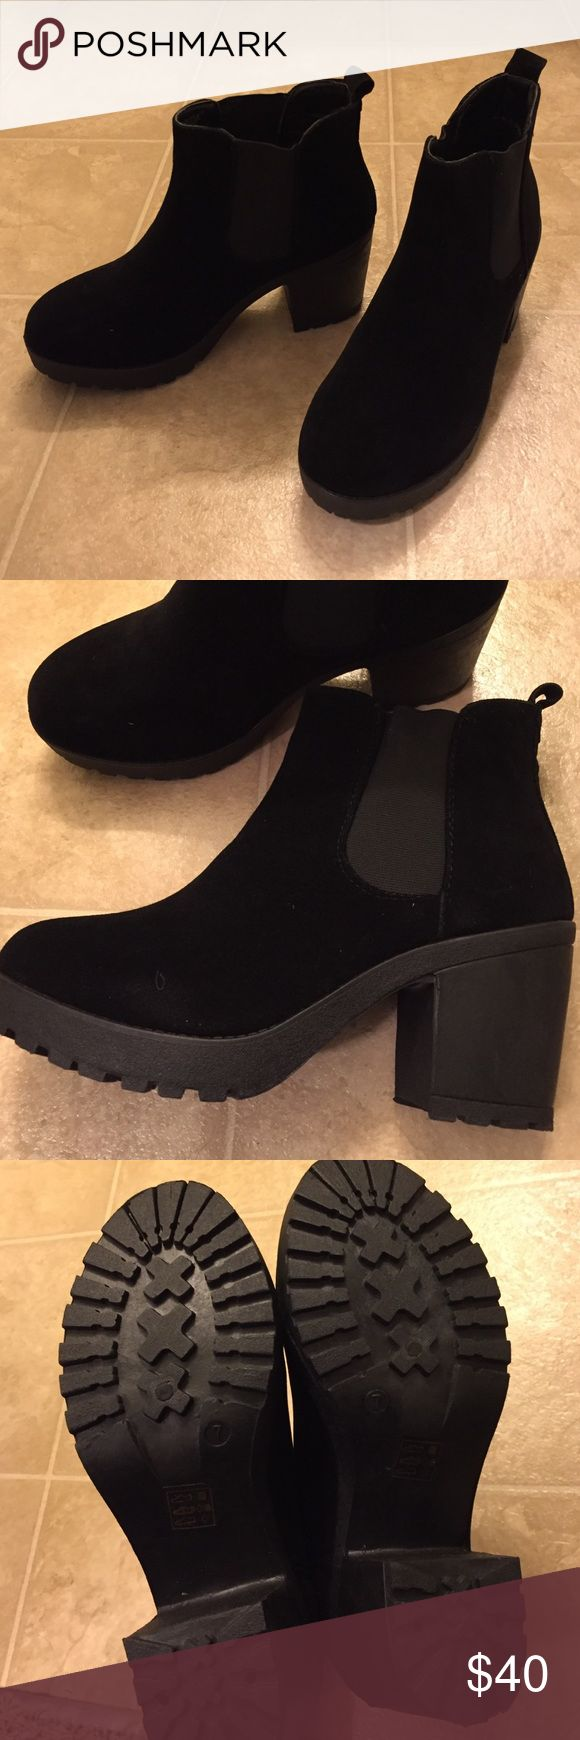 Black ankle boots for the winter! Super cute and comfortable ankle boots! Completely new and never worn...I bought the wrong size for myself although I do love them! They have a heel but is still very comfortable! The material of the boots is like suede Boohoo Shoes Ankle Boots & Booties